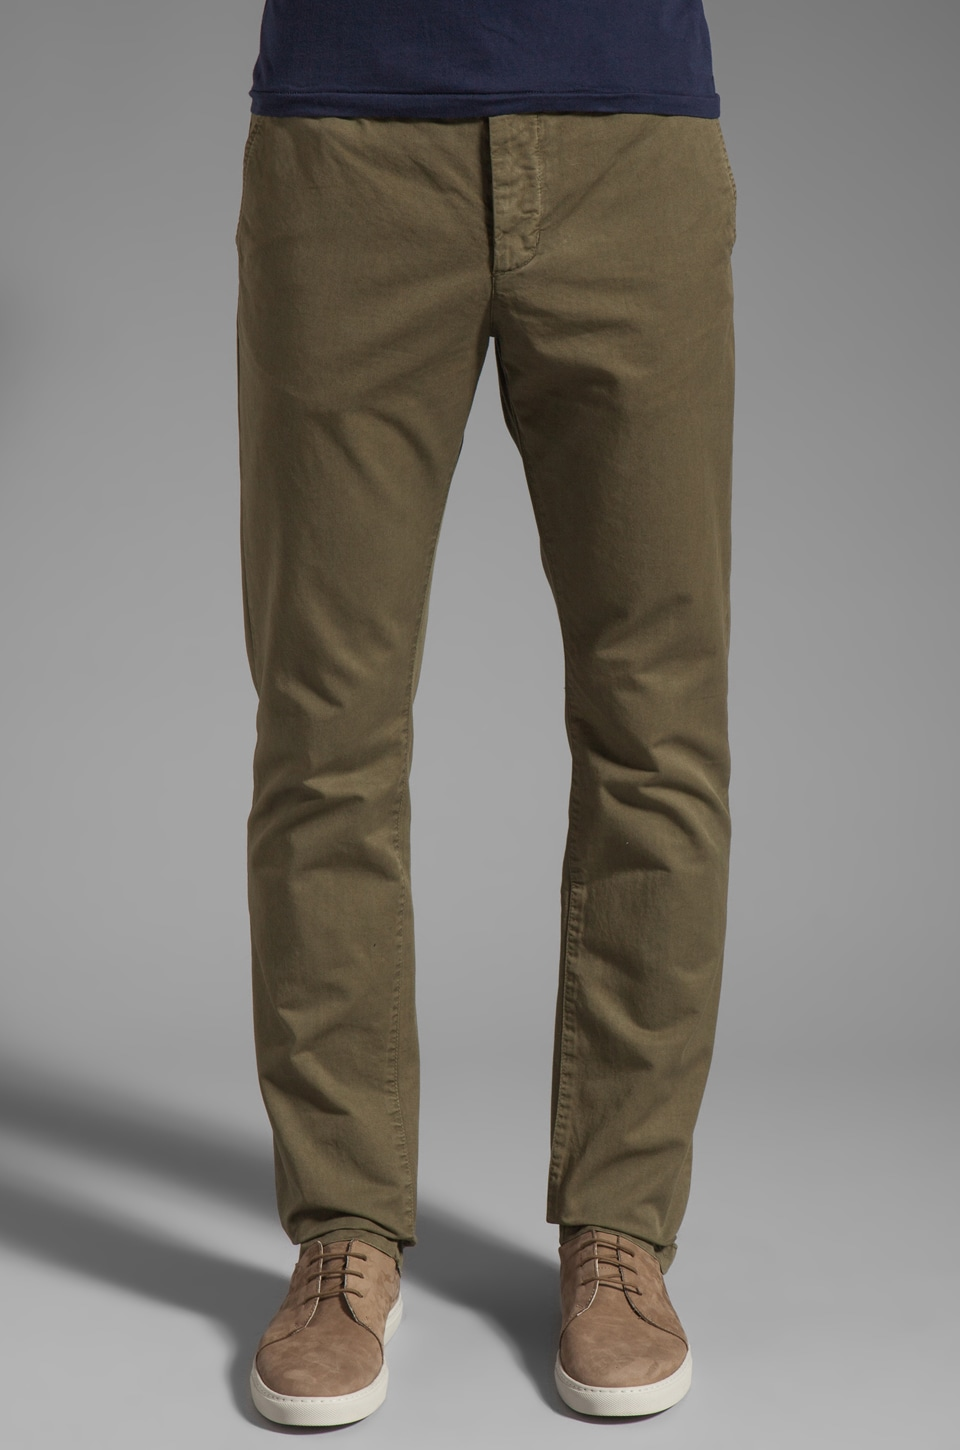 Obey Classique Chino Pant in Avocado